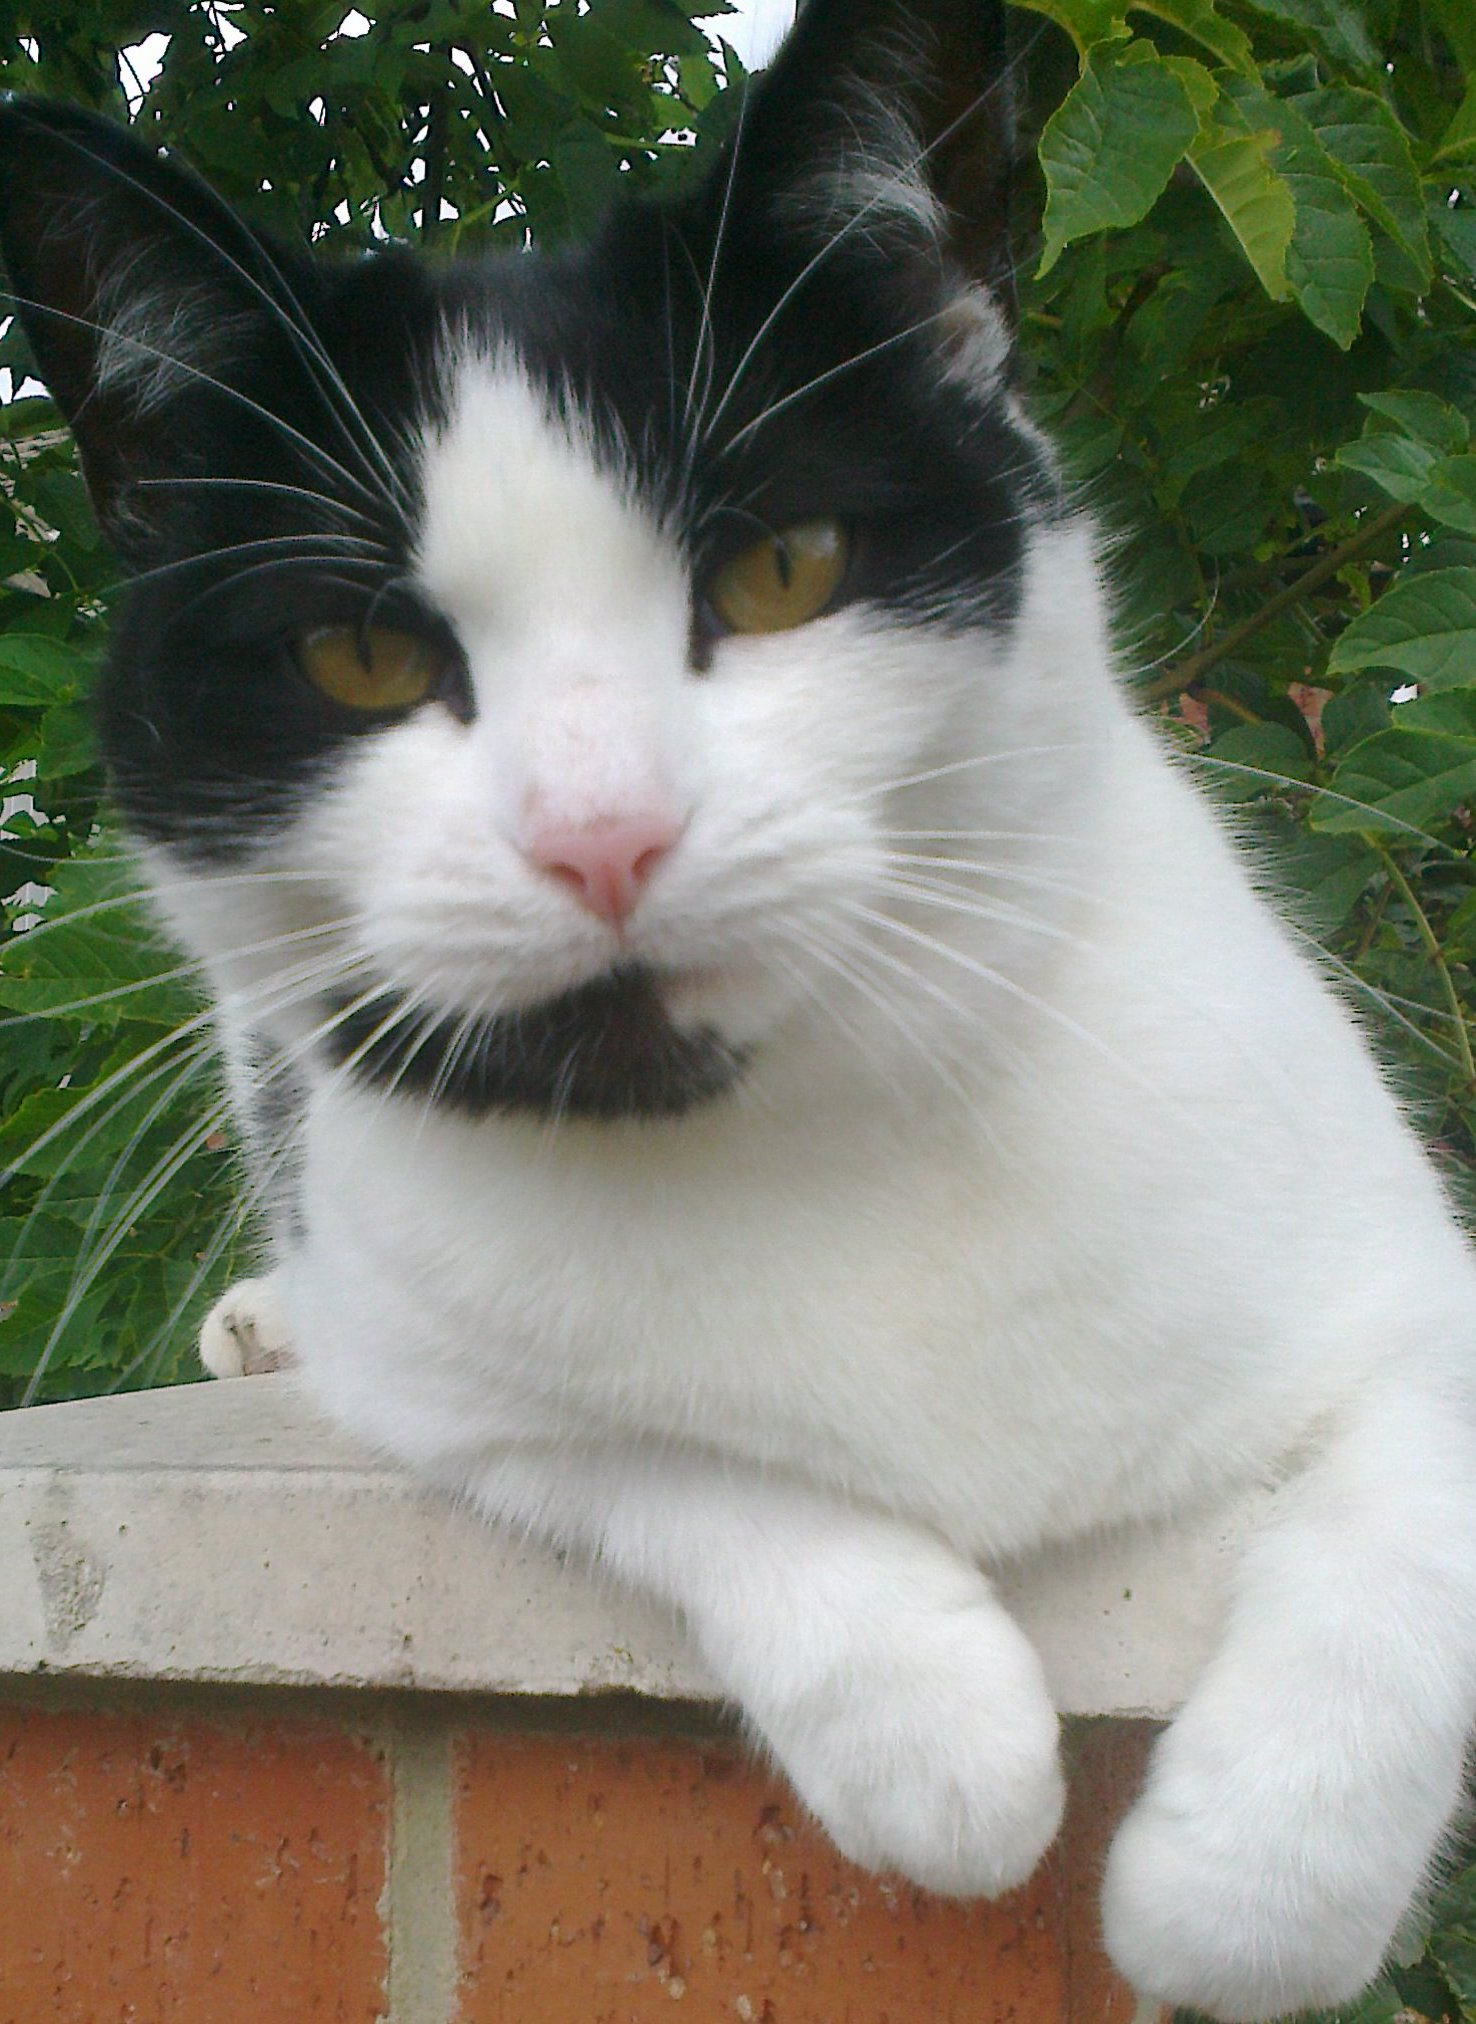 Dom is a male black-and-white short-haired moggy. In this picture he is sat on a garden wall under a tree, looking directly at the camera. He's leaning a little to the left.